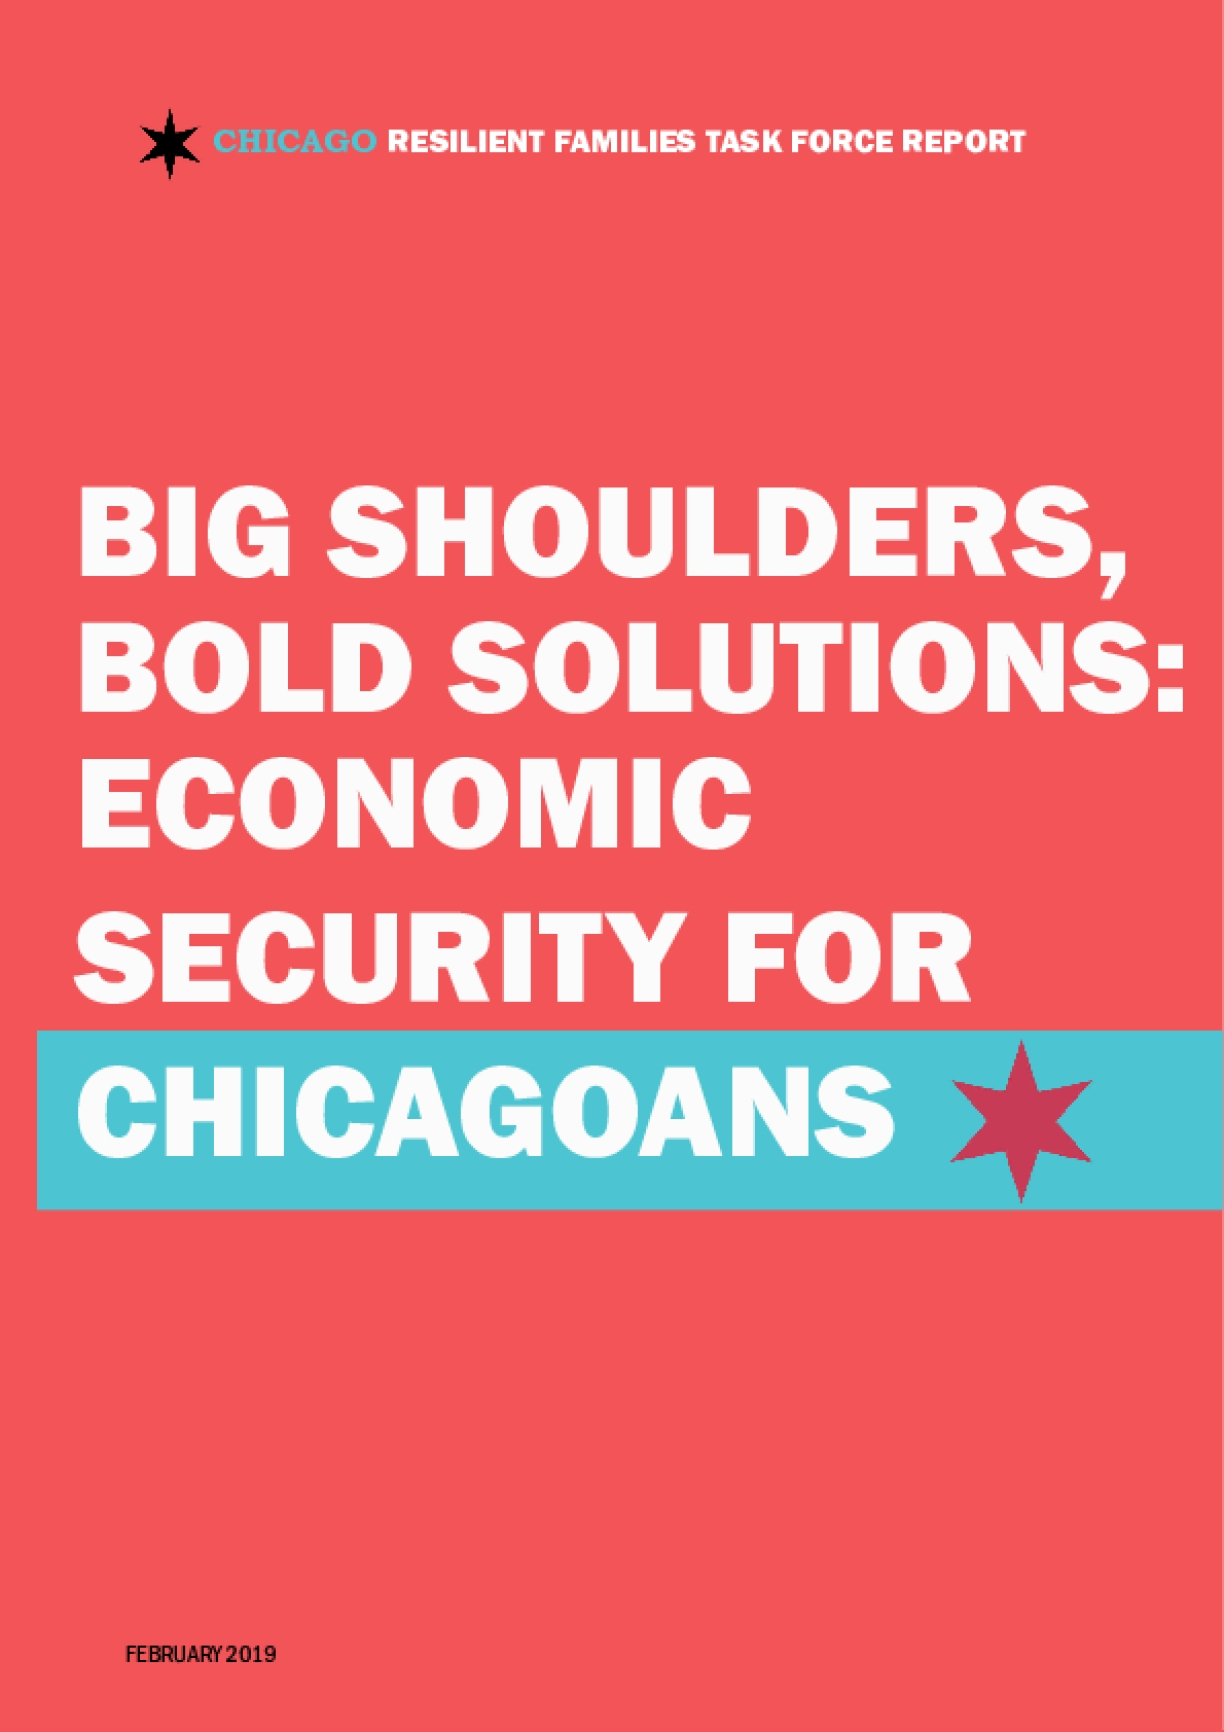 Big Shoulders, Bold Solutions; Economic Security for Chicagoans